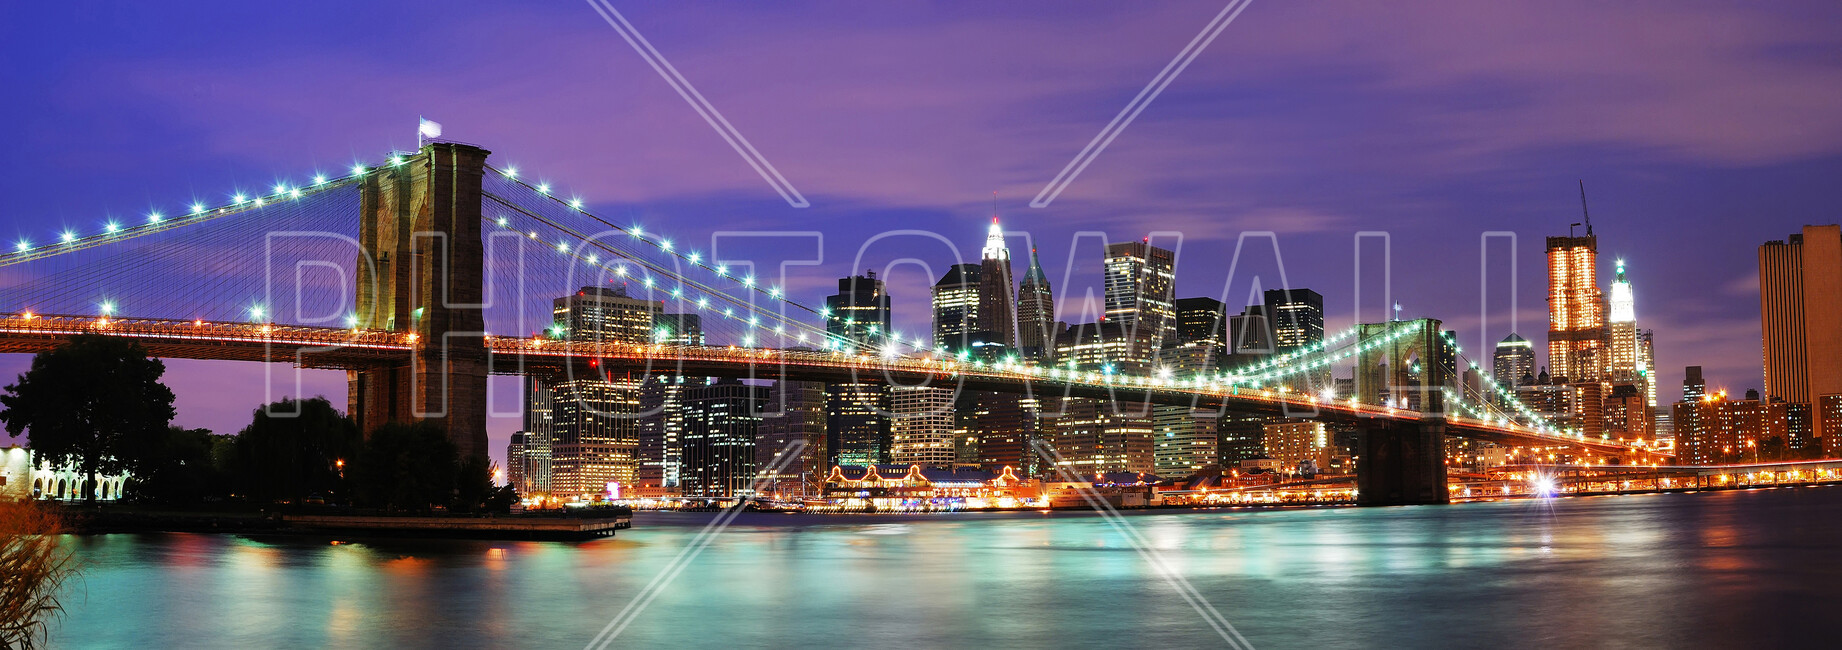 brooklyn bridge at night bilder auf leinwand photowall. Black Bedroom Furniture Sets. Home Design Ideas